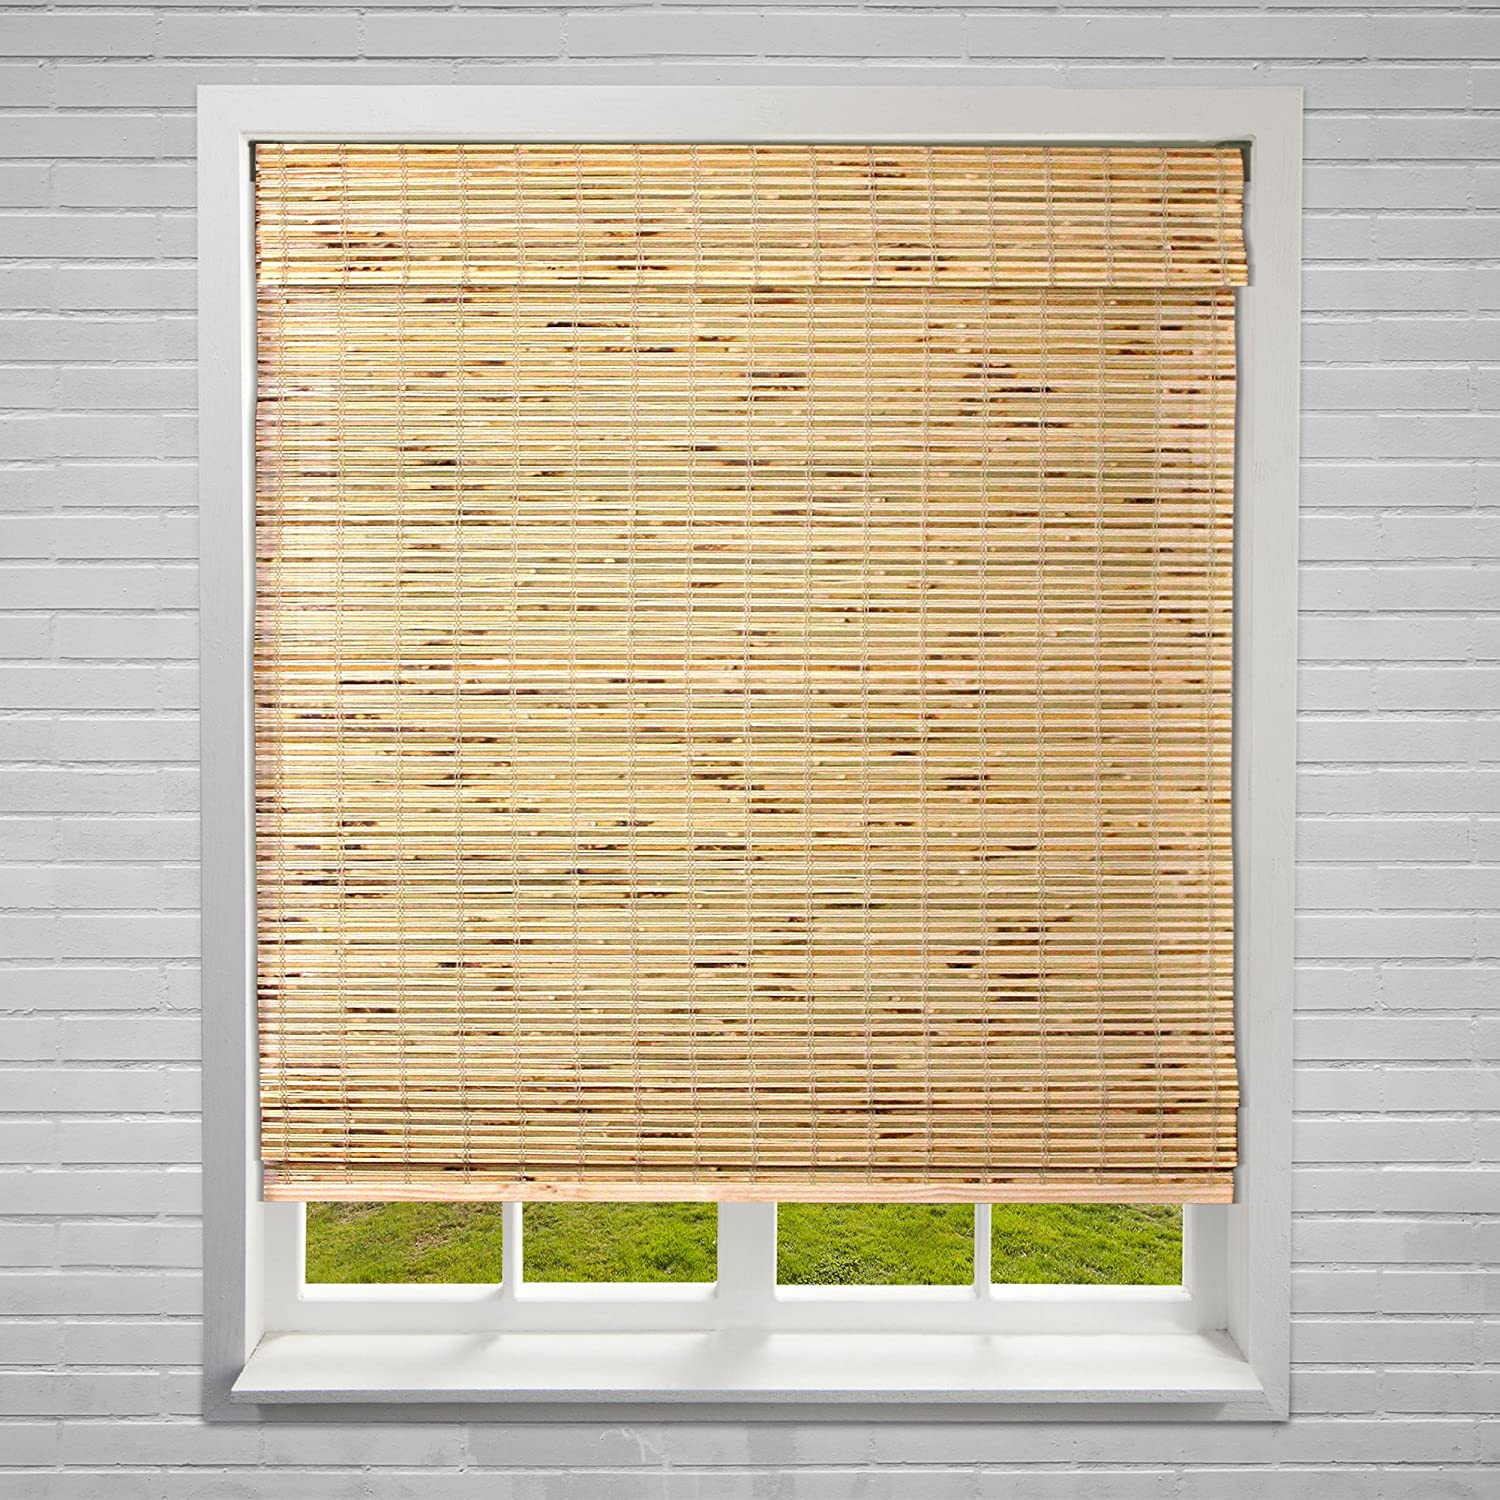 Calyx Interiors A04CBK344600 Cordless Bamboo Blind, 34.5  W X 60  H, Petite Rustic